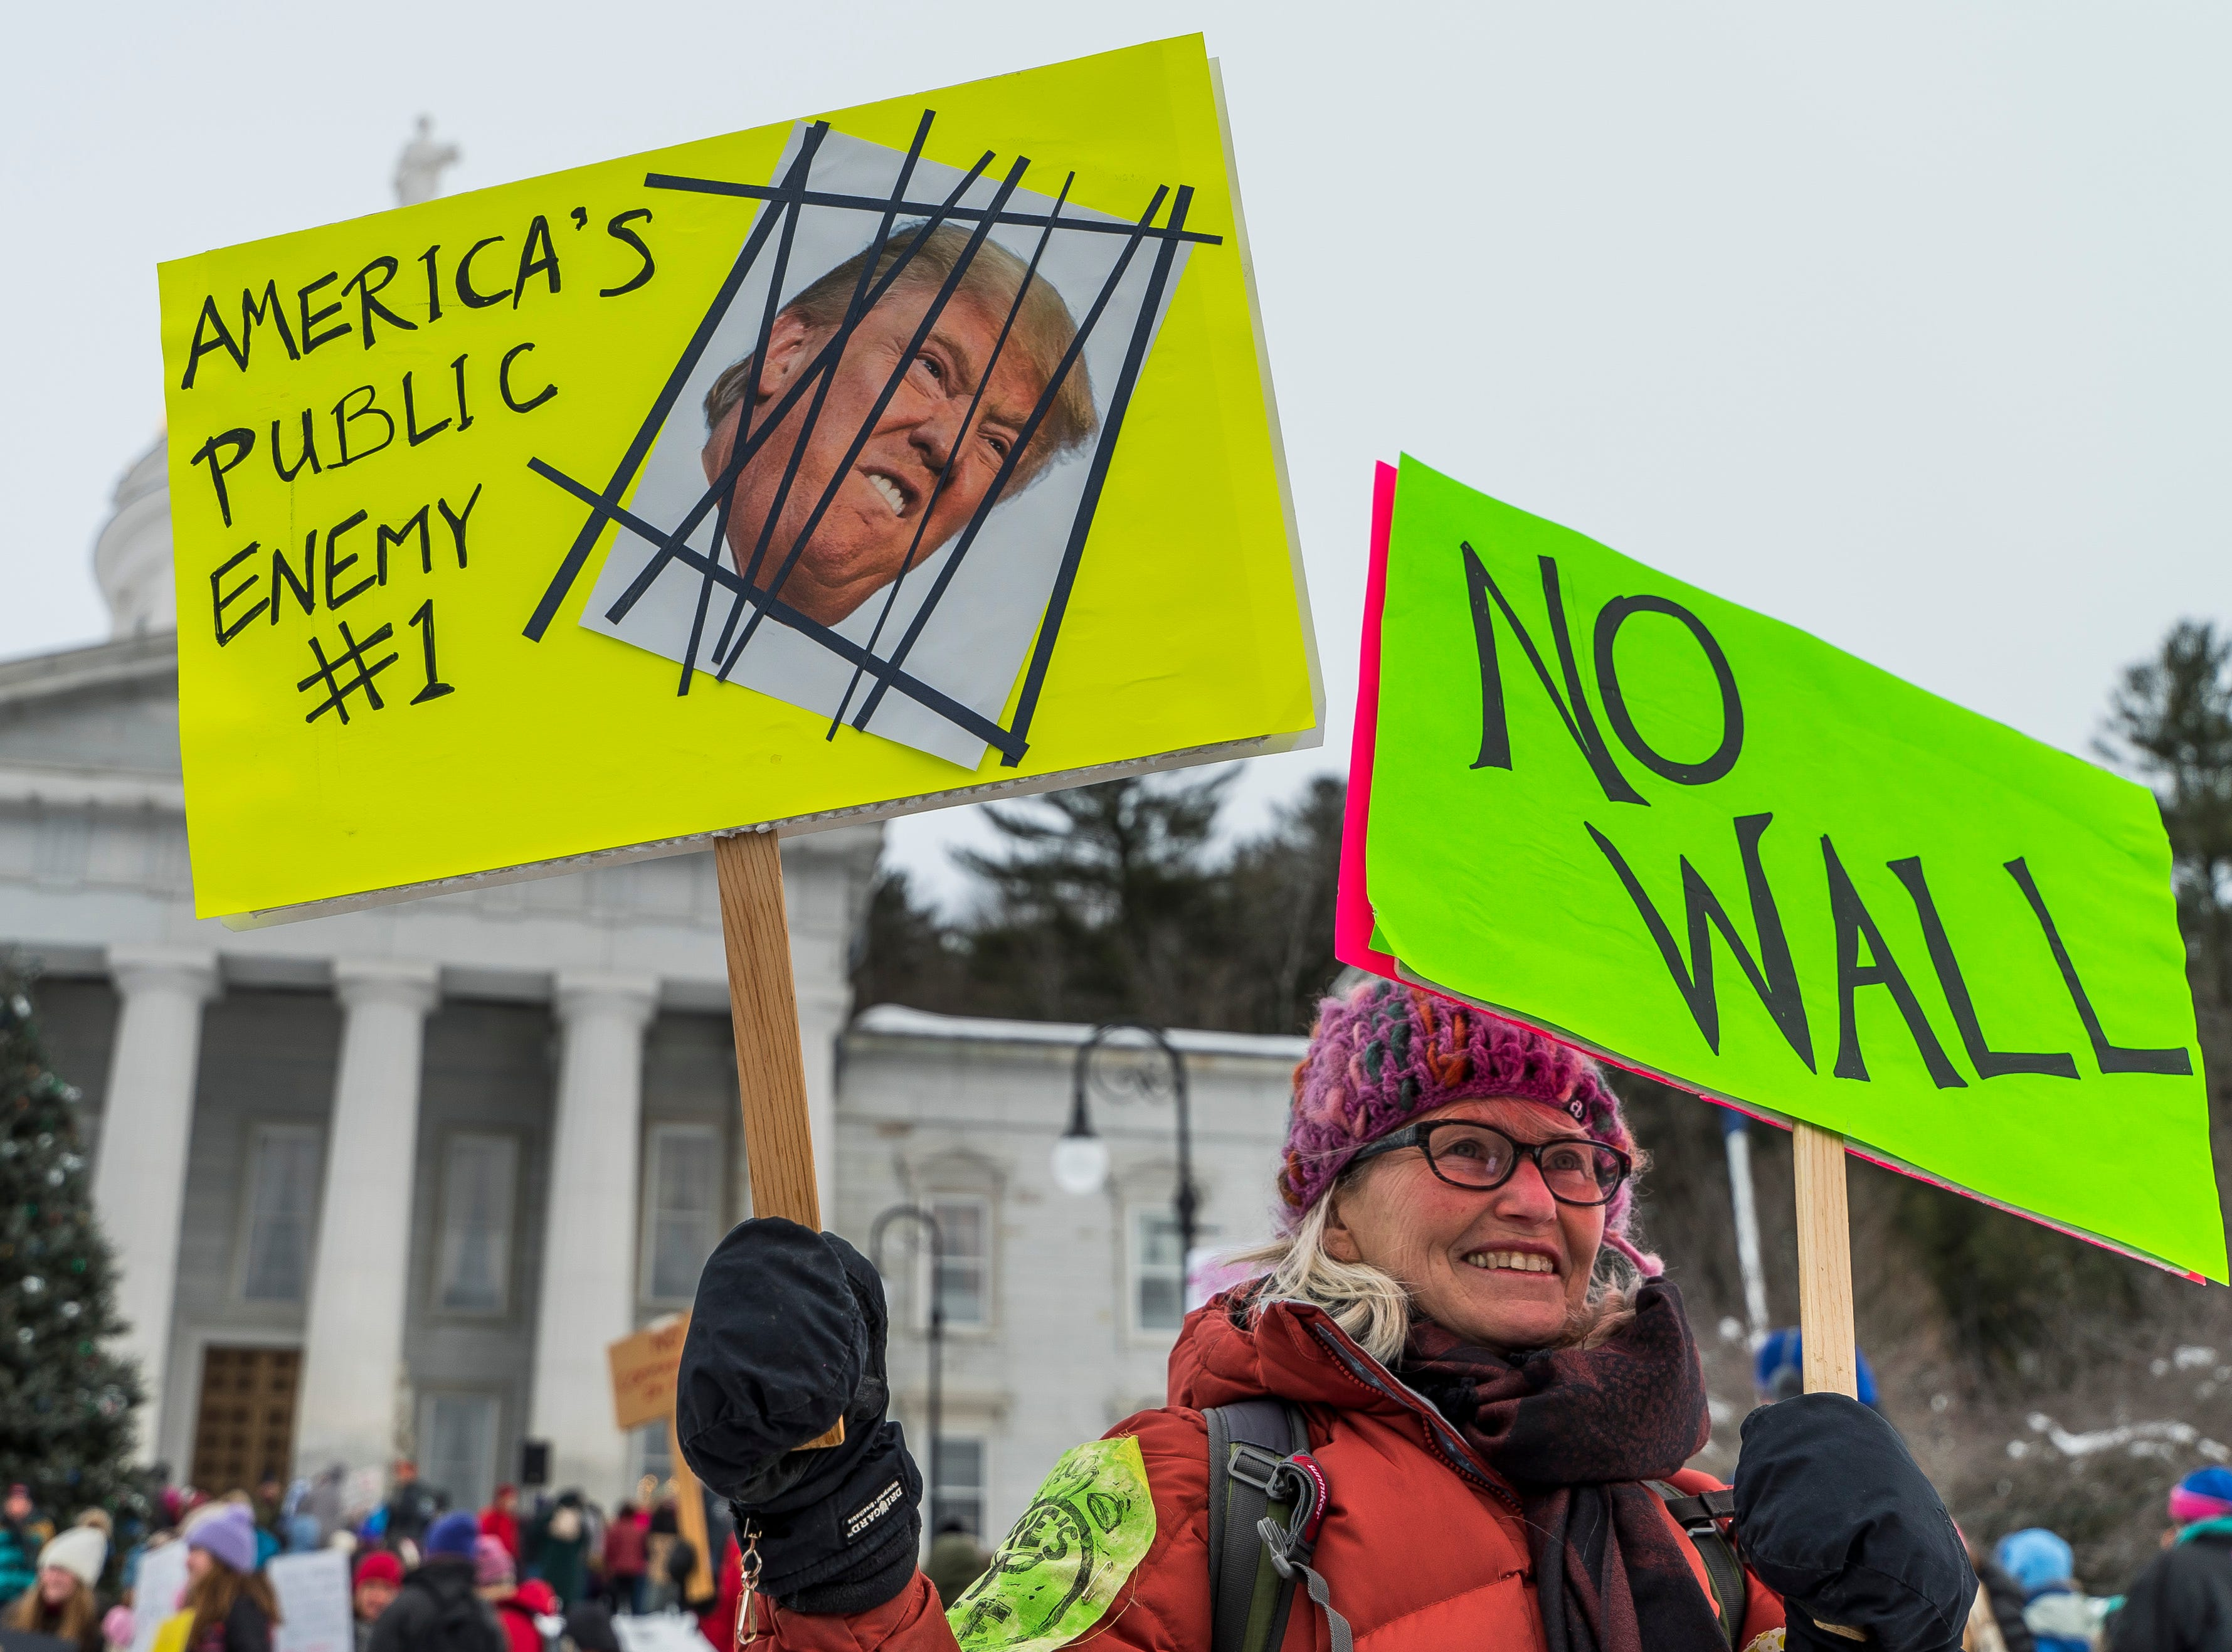 Susan Murry-Grage of Underhill, Vt., holds up anti-Tump signs at the Women's March Vermont rally in Montpelier on Saturday, Jan. 19, 2019. According to police, about 700 to 1000 people attended the rally.